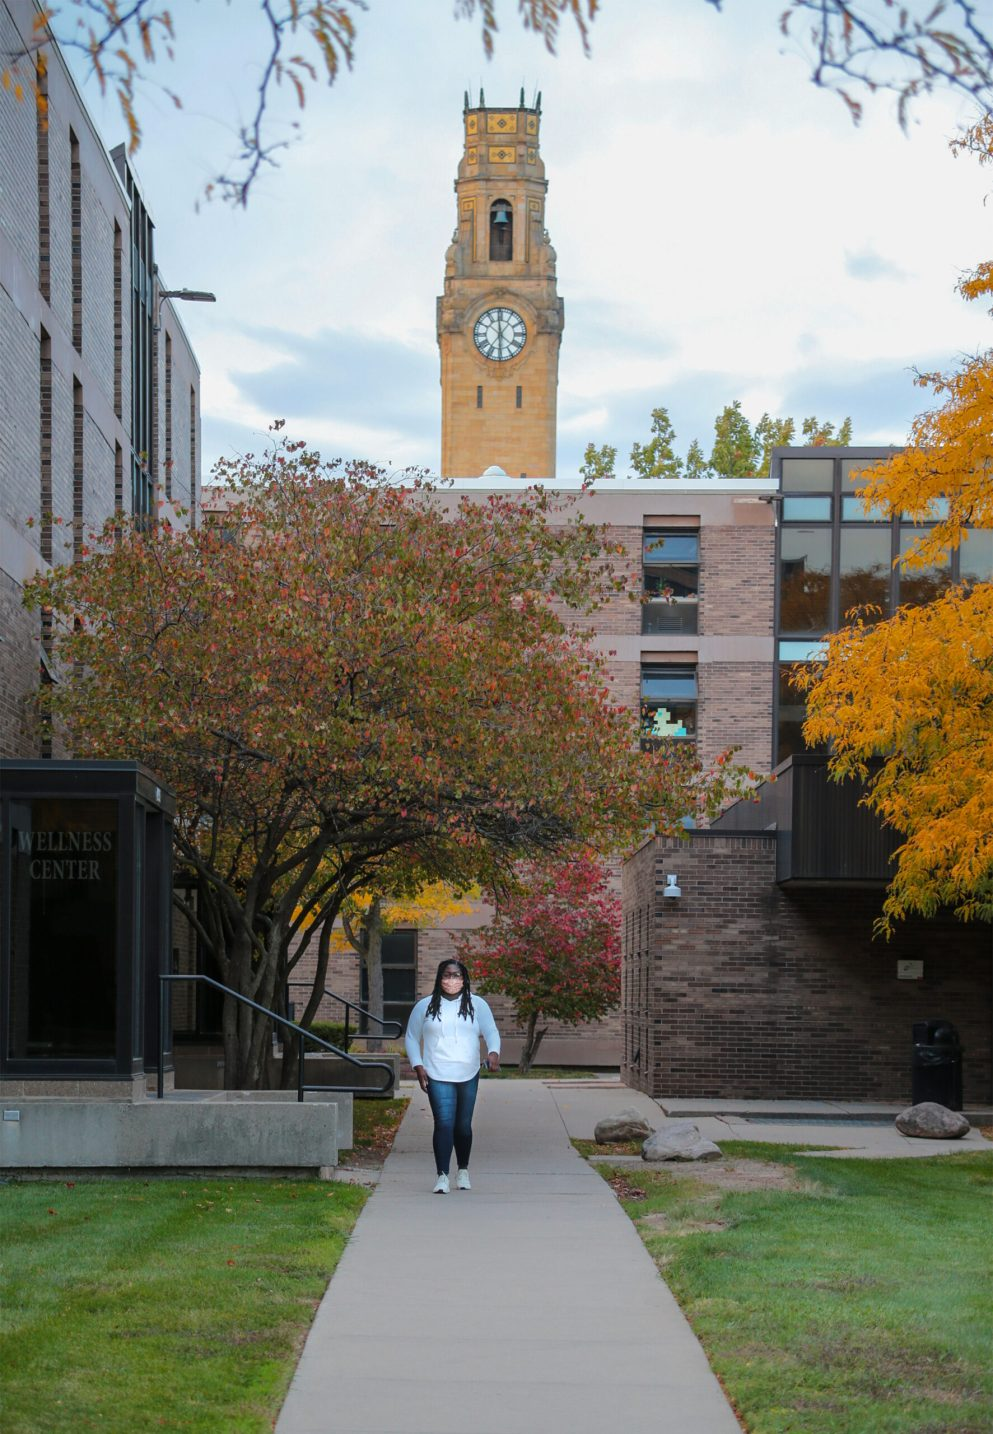 A Detroit Mercy student steps out of the dorms on their way to Fall Festival while wearing a mask.